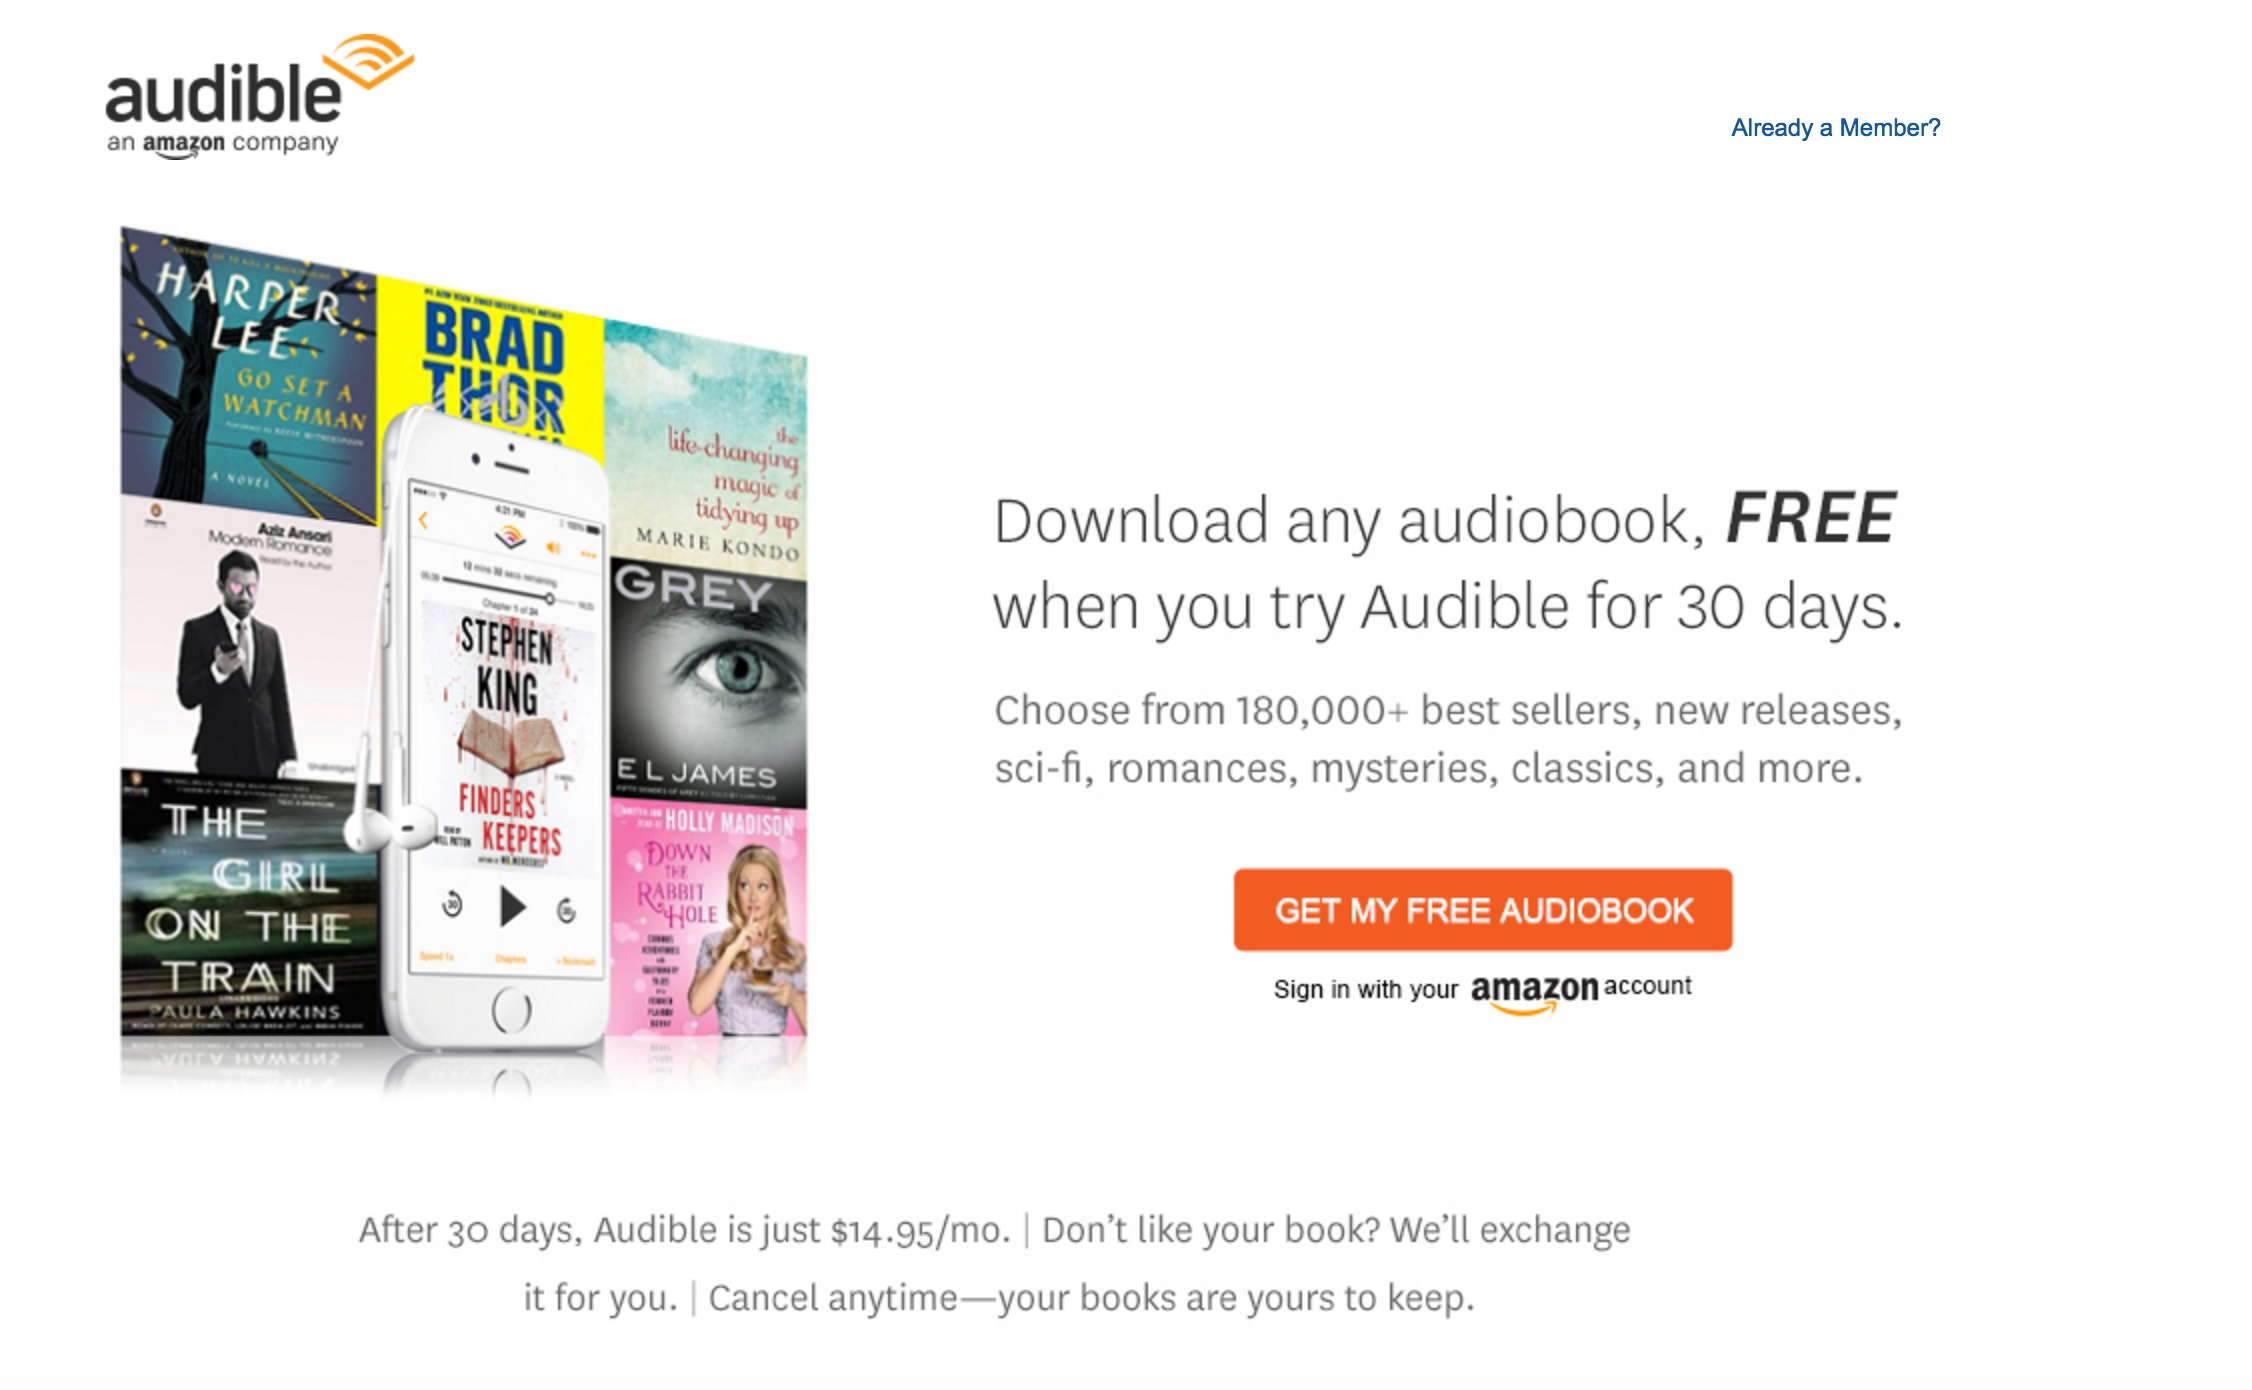 That is, for the books free on Audible Channels. If play a book you have purchased through Audible, the app does download the book. It can be deleted from your phone when you are finished listening.